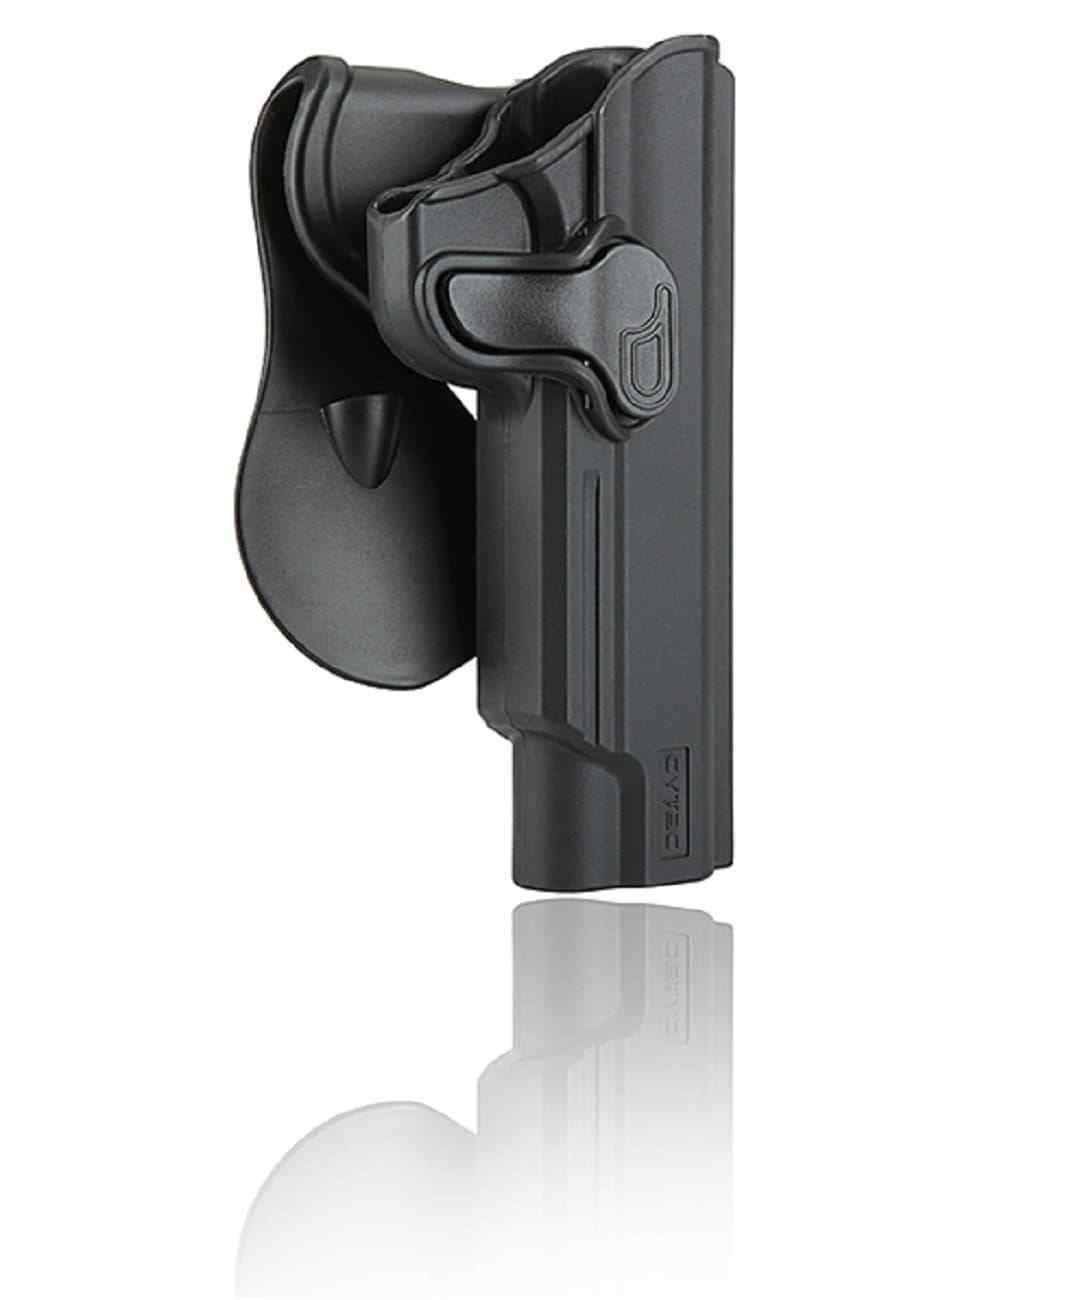 Cytac Holster mit Paddle 360° Rotations Colt 1911 5    ZOLL M1911 Girsan + Andere 9173e1